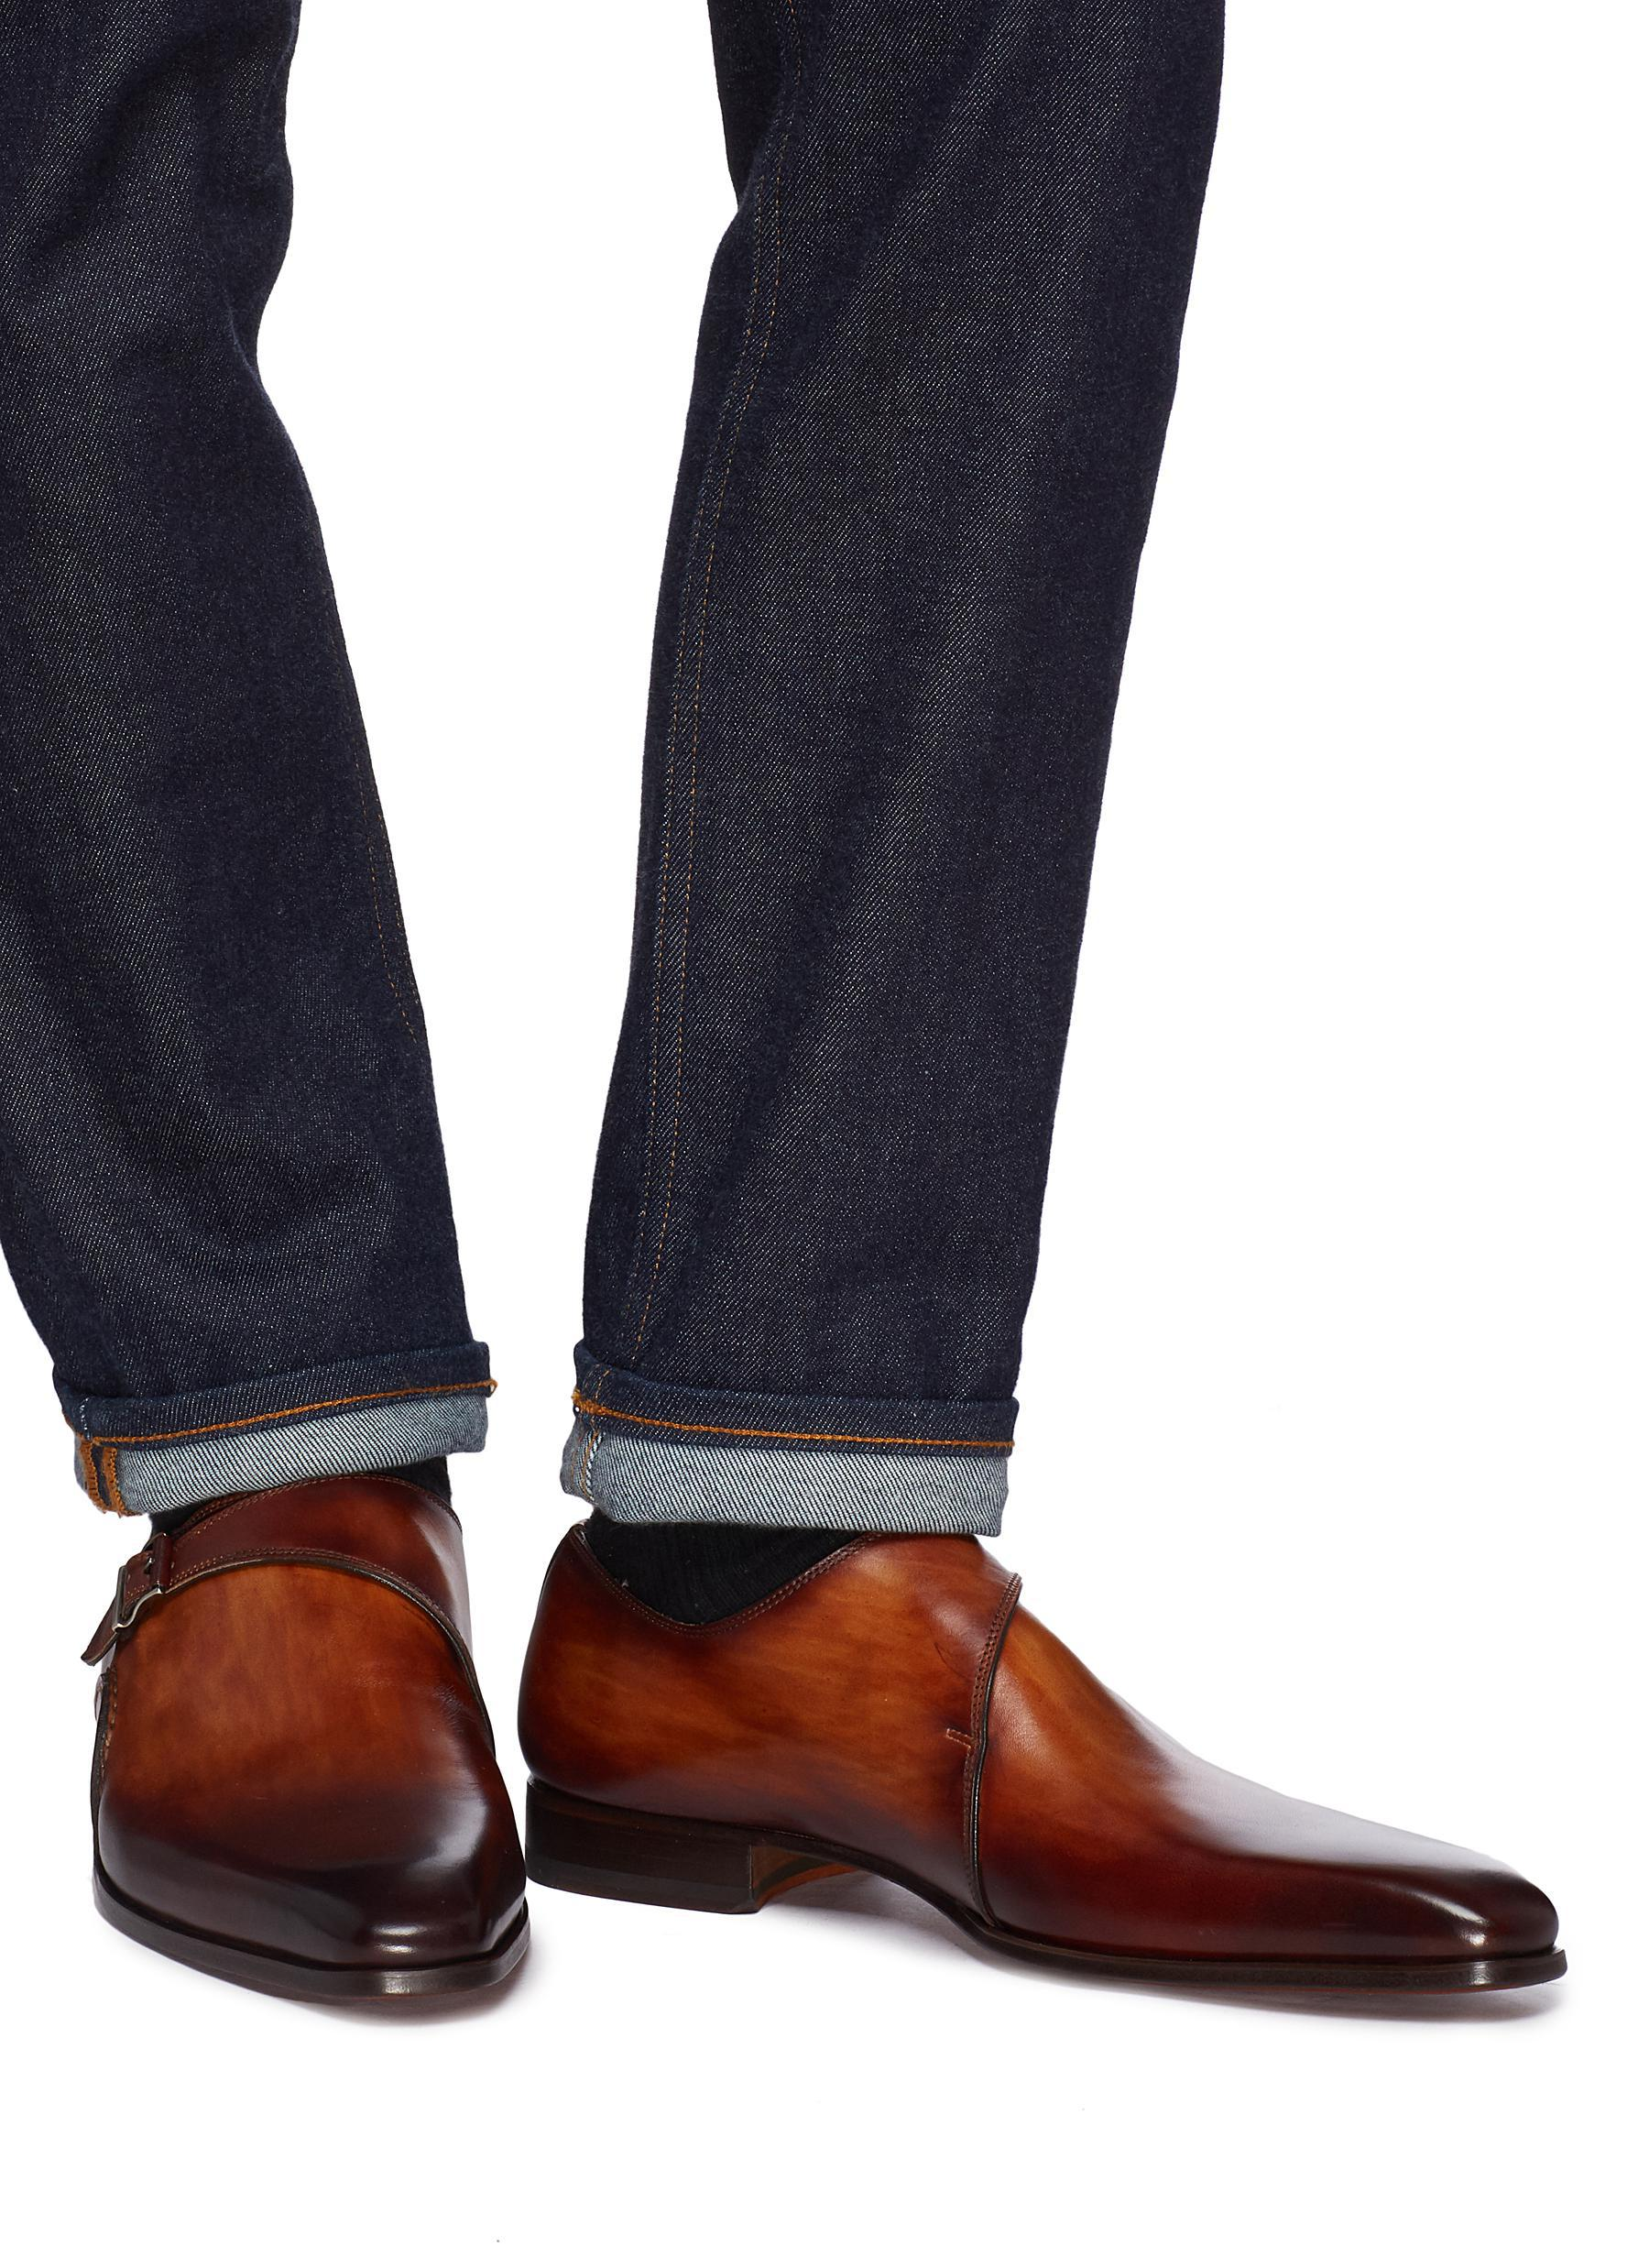 7cd4094abbb Lyst - Magnanni Monk Strap Leather Loafers in Brown for Men